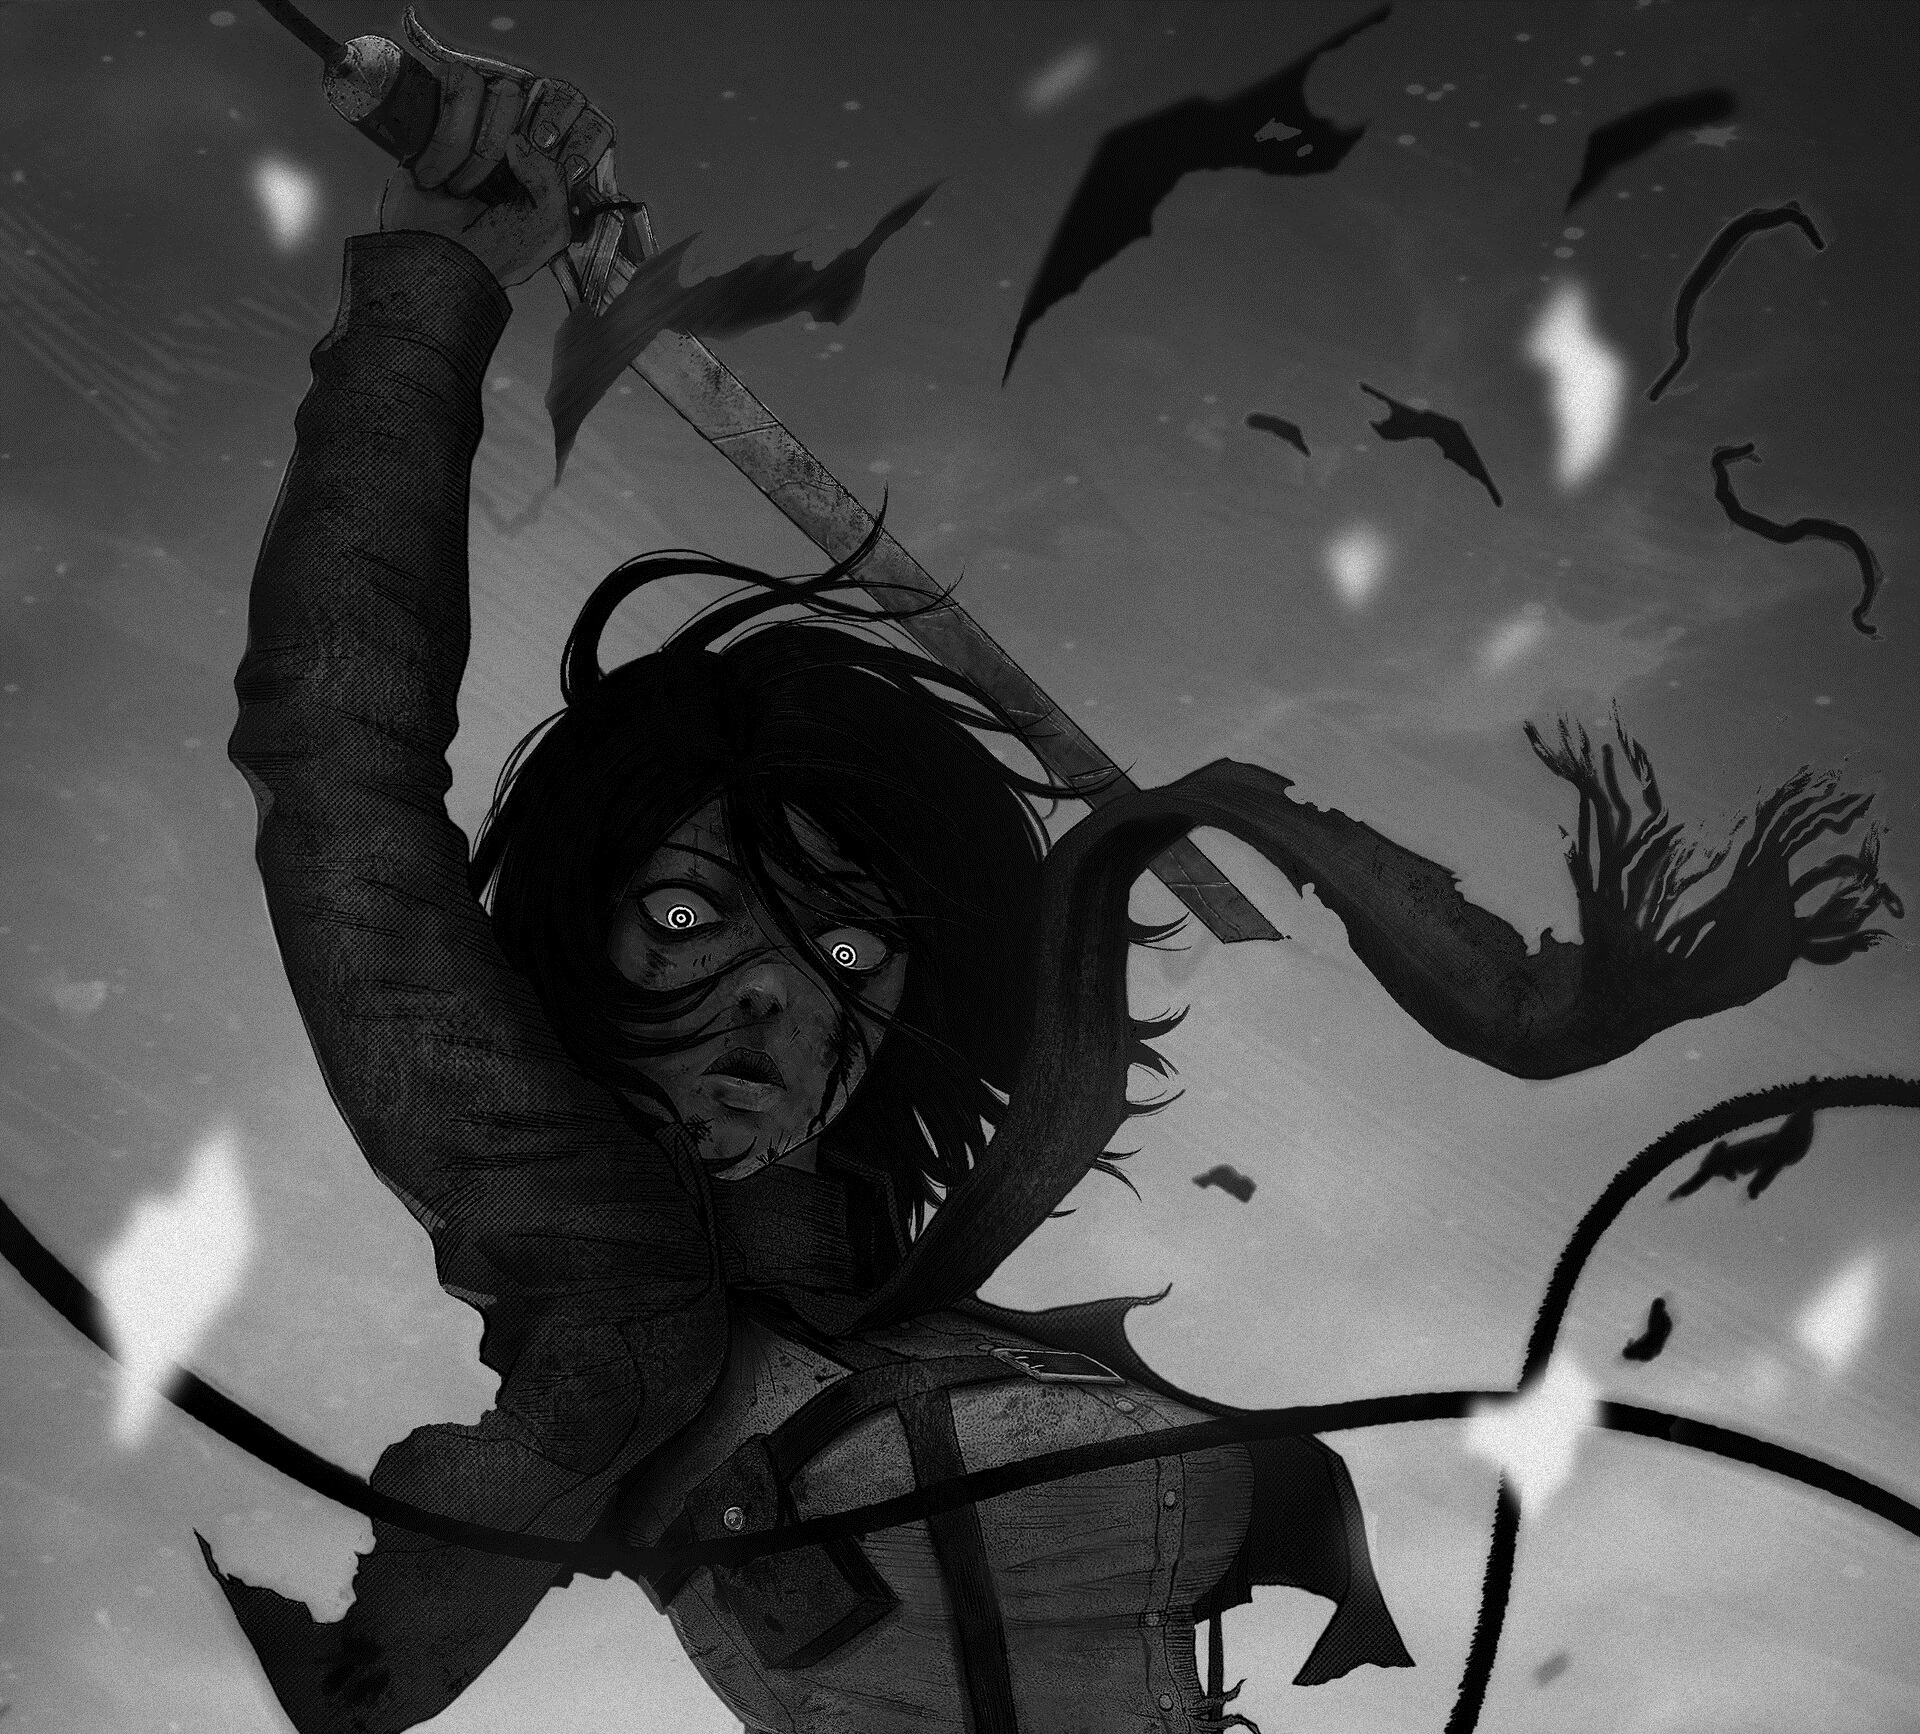 Mikasa Ackerman Dark 1920x1734 Download Hd Wallpaper Wallpapertip